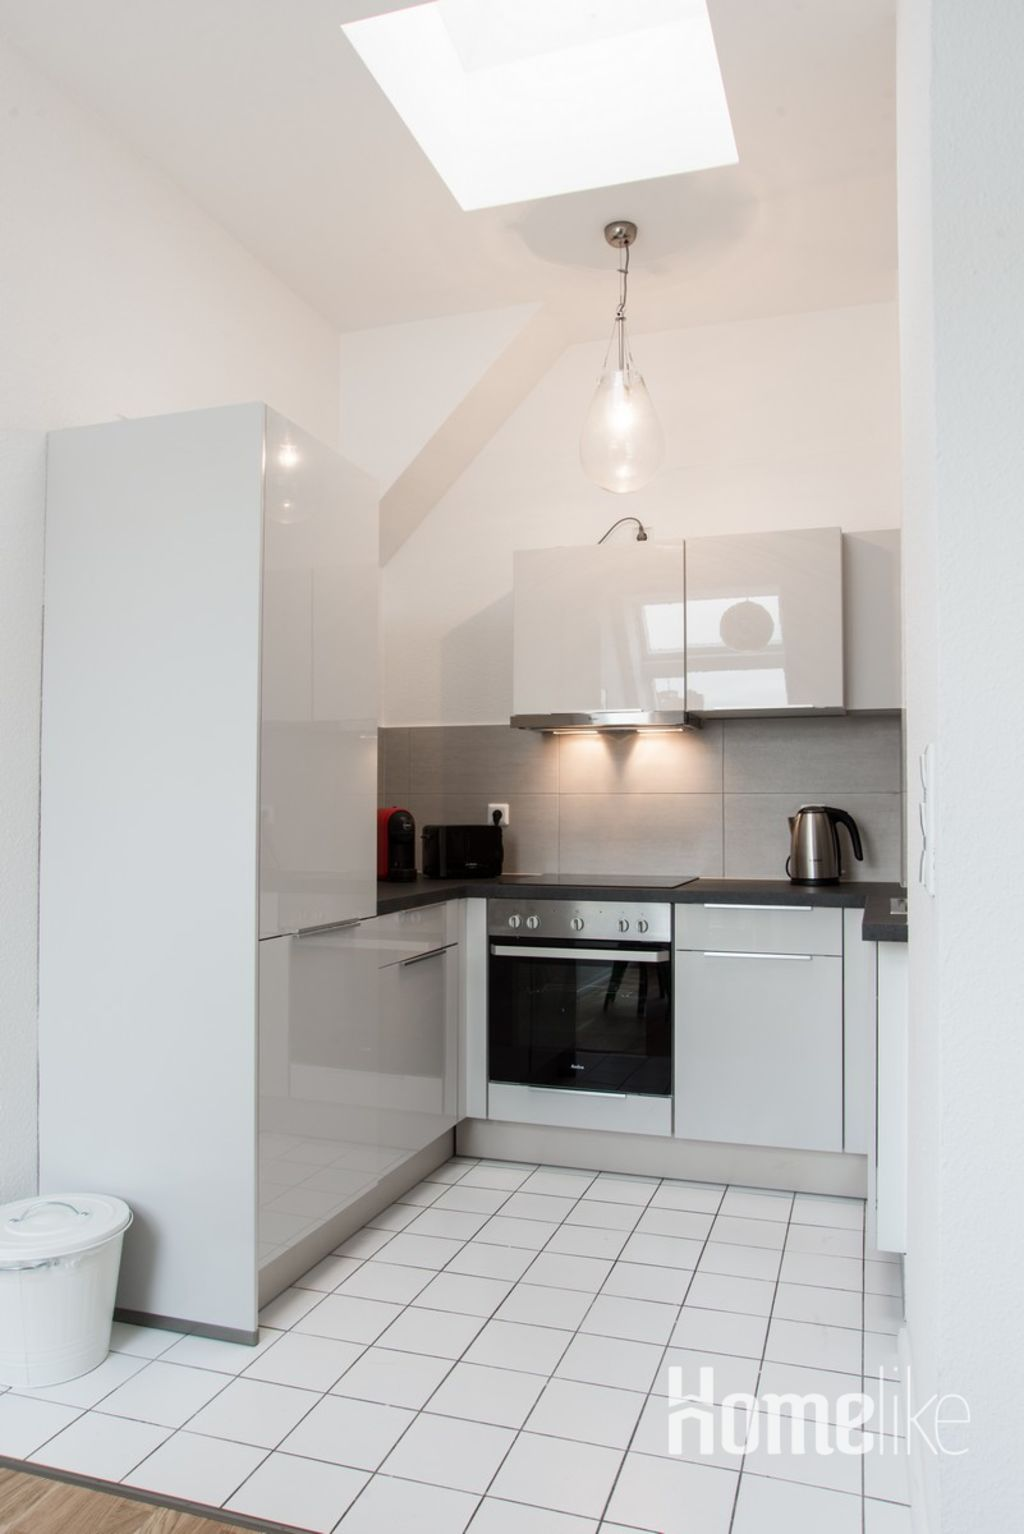 image 6 furnished 1 bedroom Apartment for rent in Wedding, Mitte